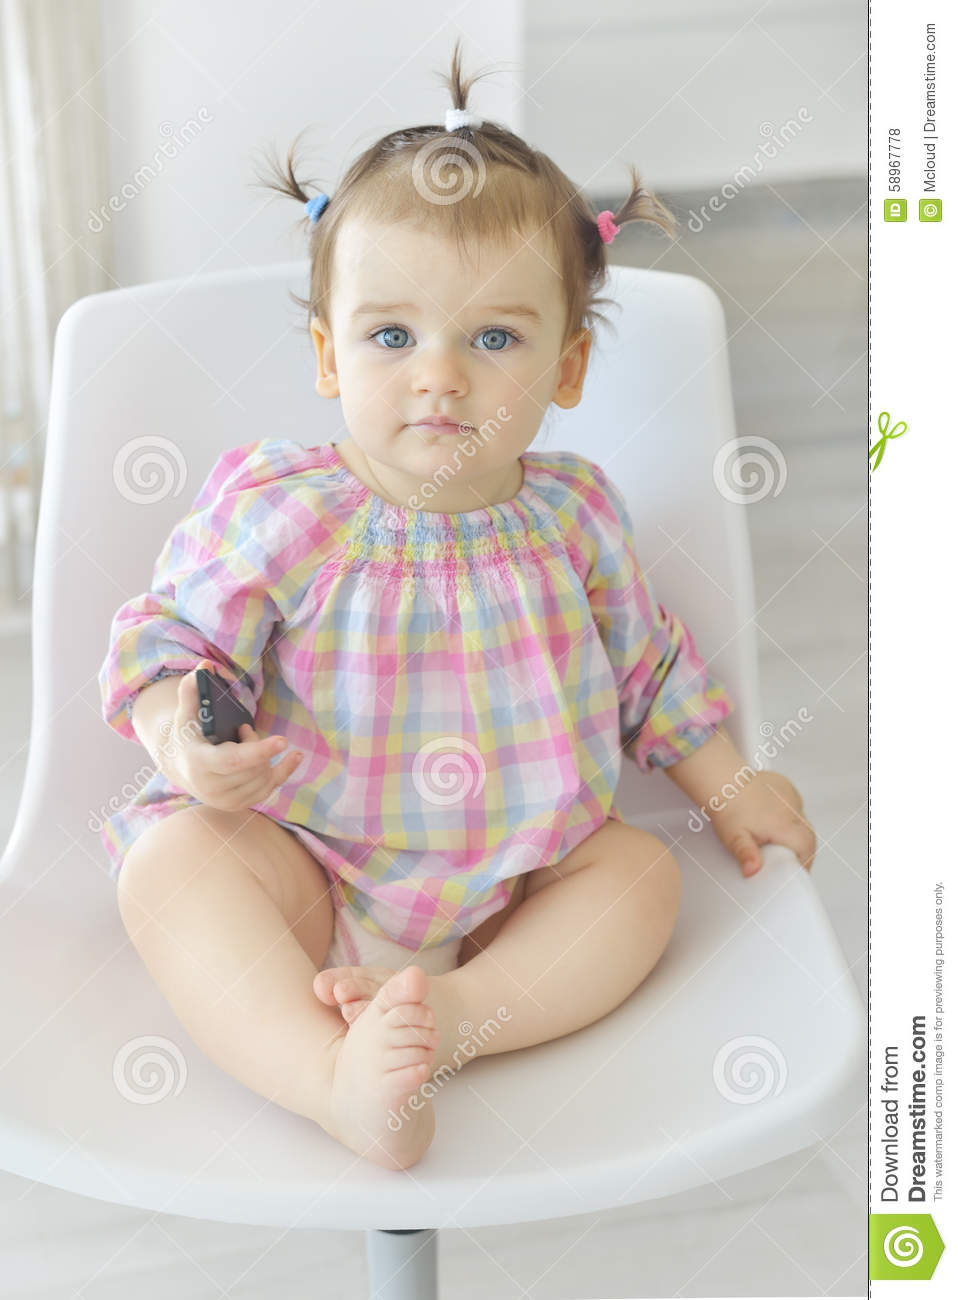 933b37e8d Cute Baby Girl Sitting In A Basket Stock Photo - Image of innocent ...